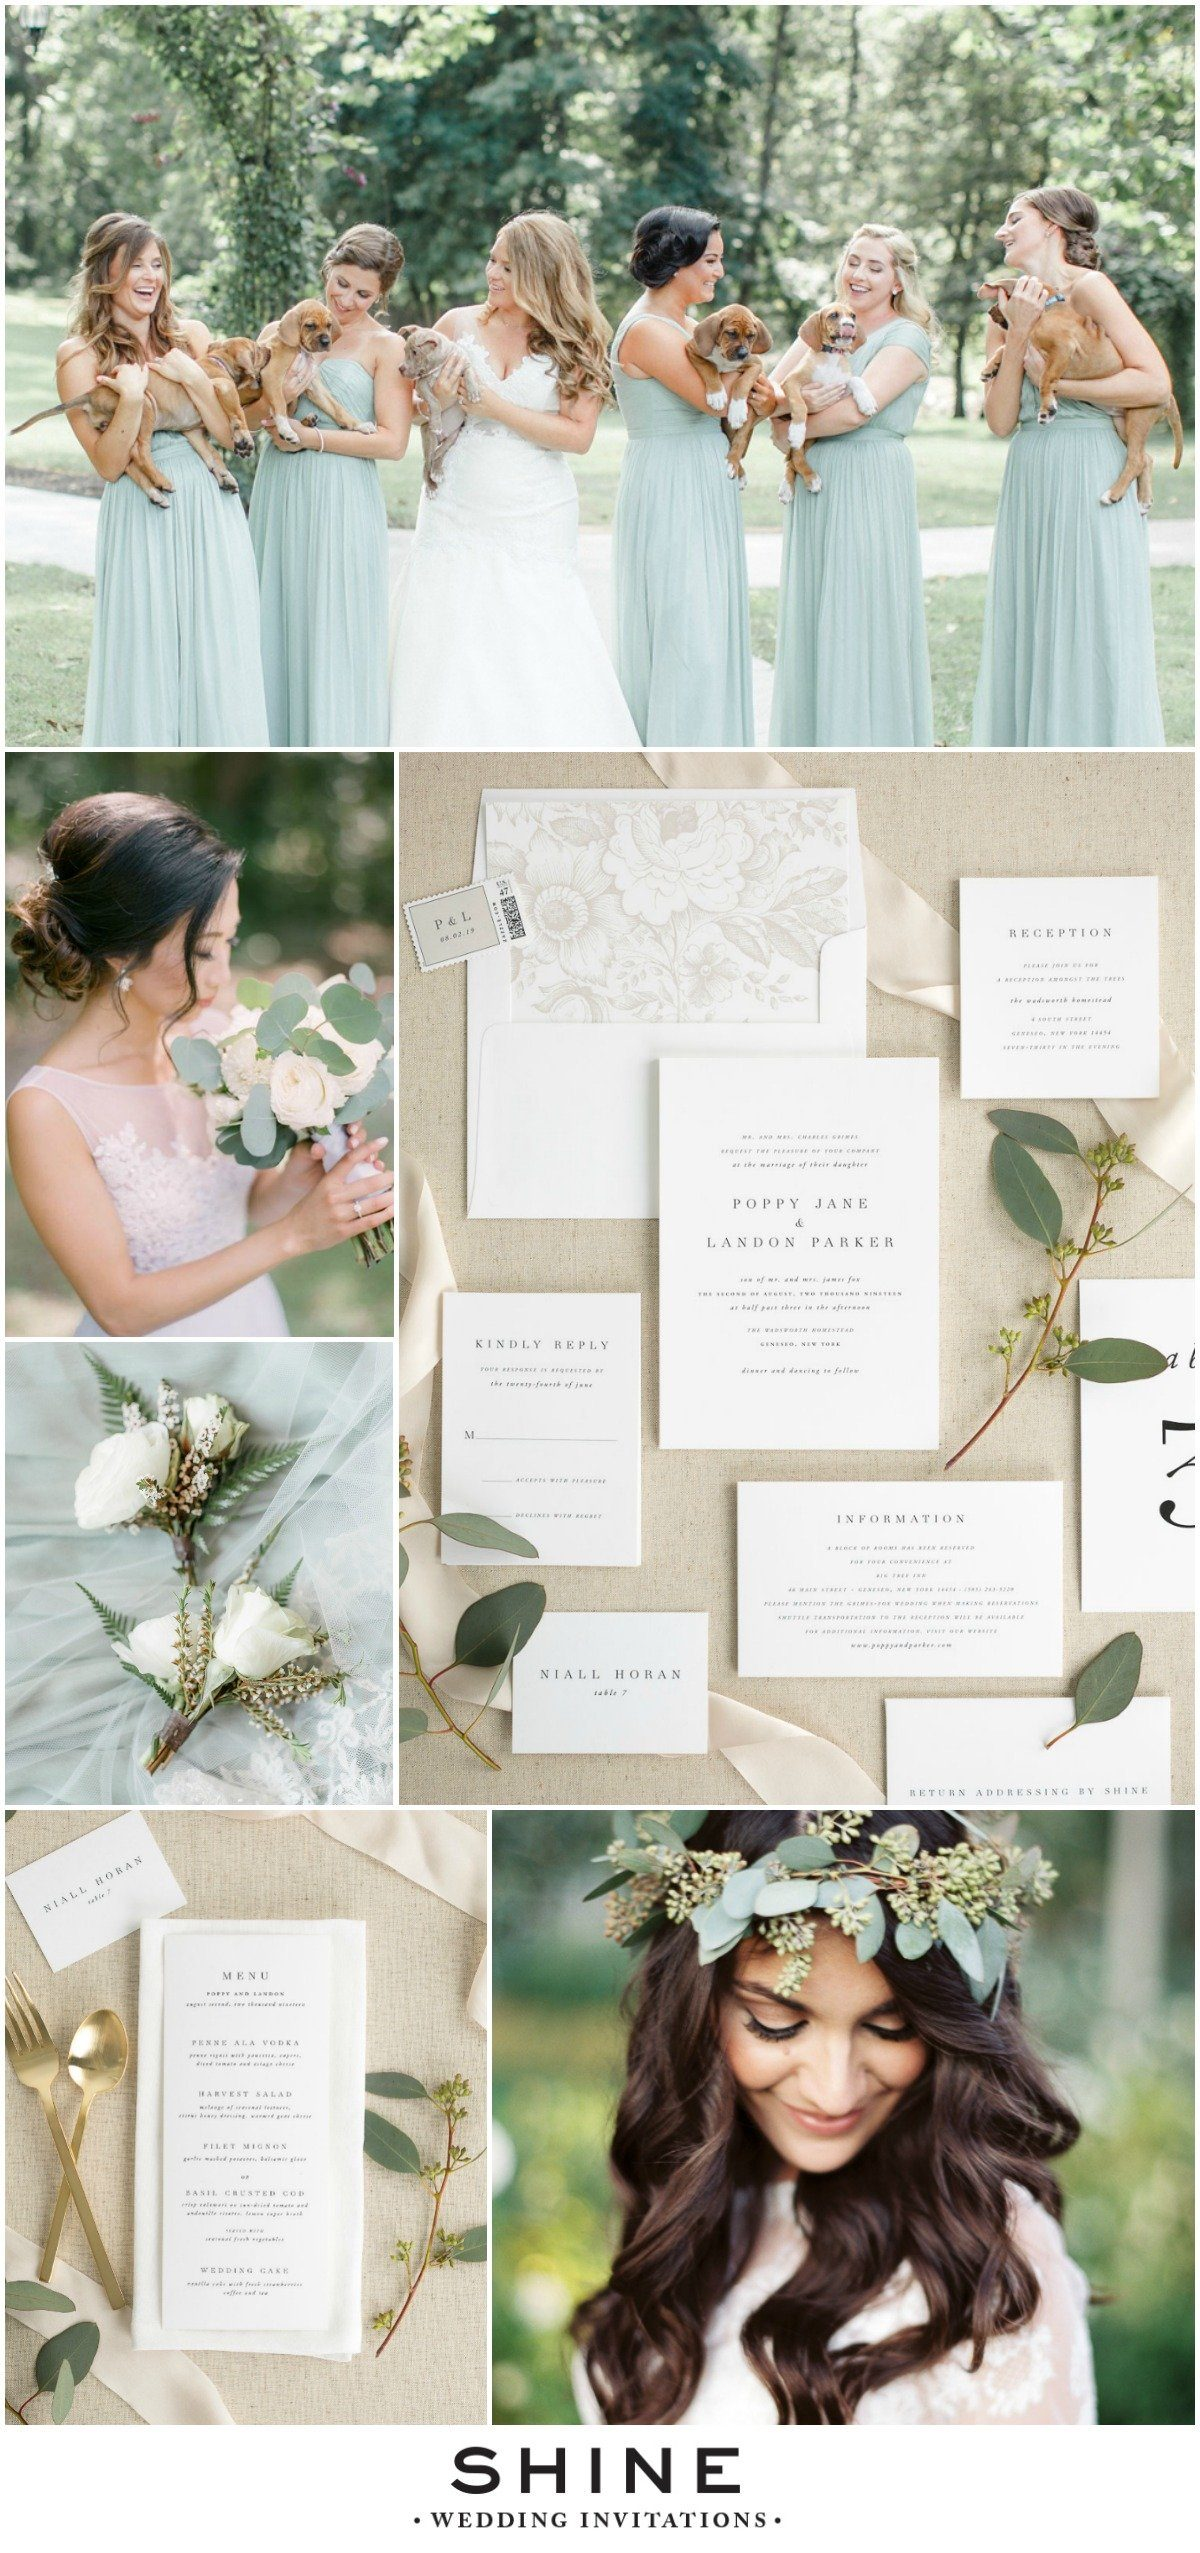 Classic Wedding Invitations with Soft Greenery and a Puppy Bouquet